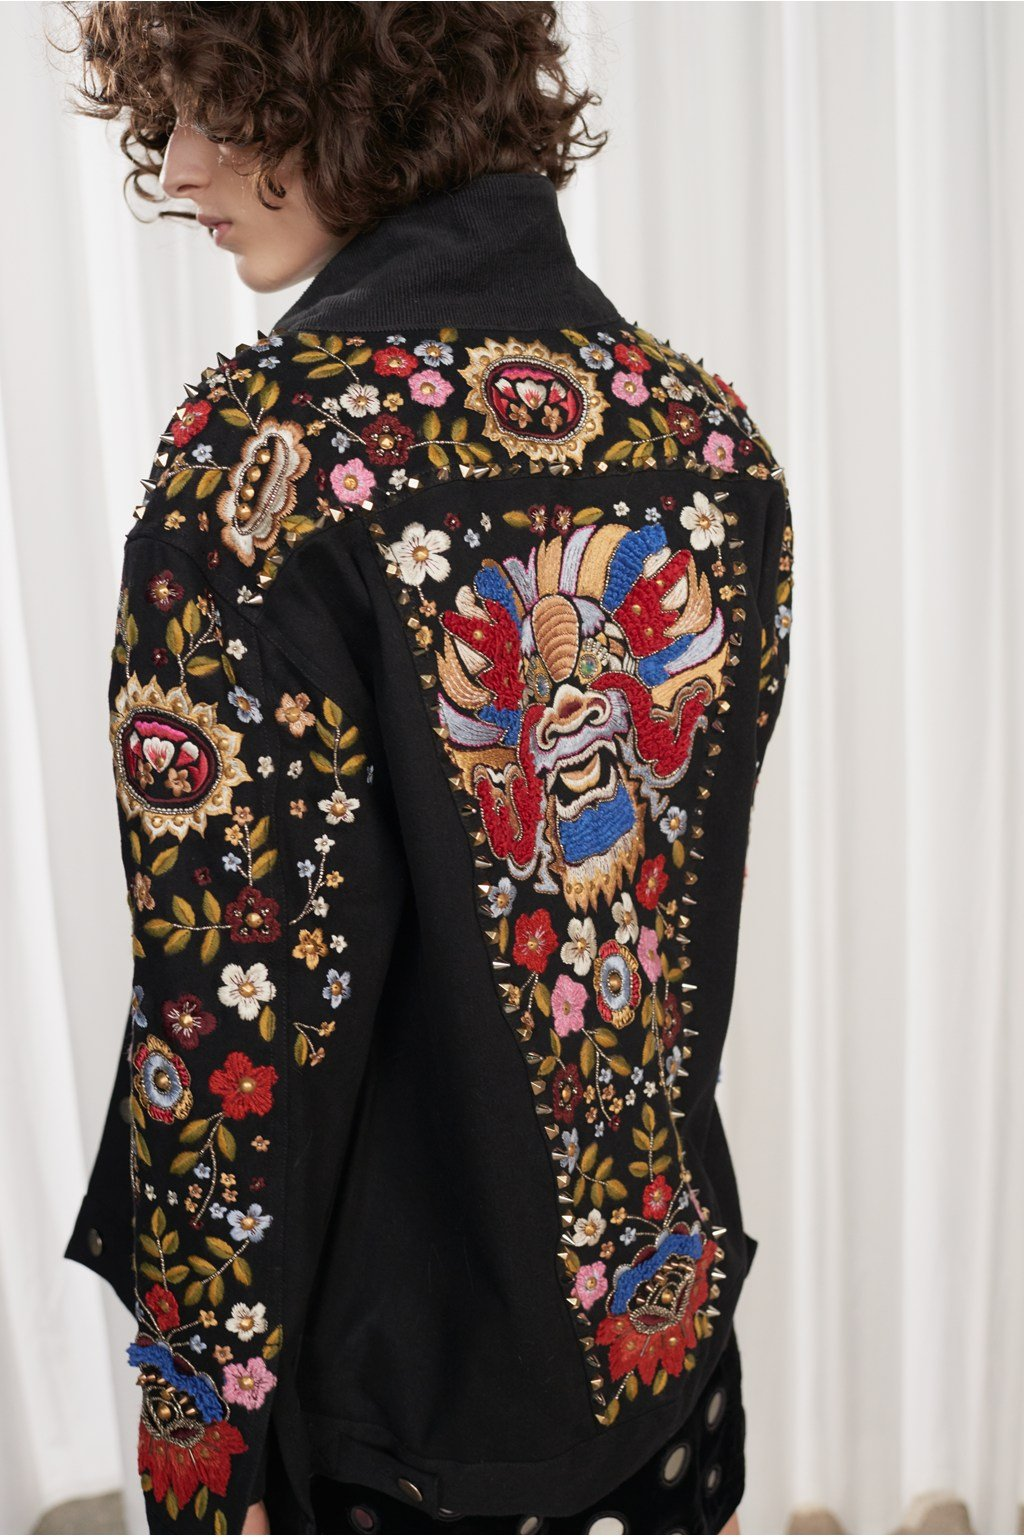 Mazie Floral Hand-Embroidered Denim Jacket | Sale | French Connection Usa